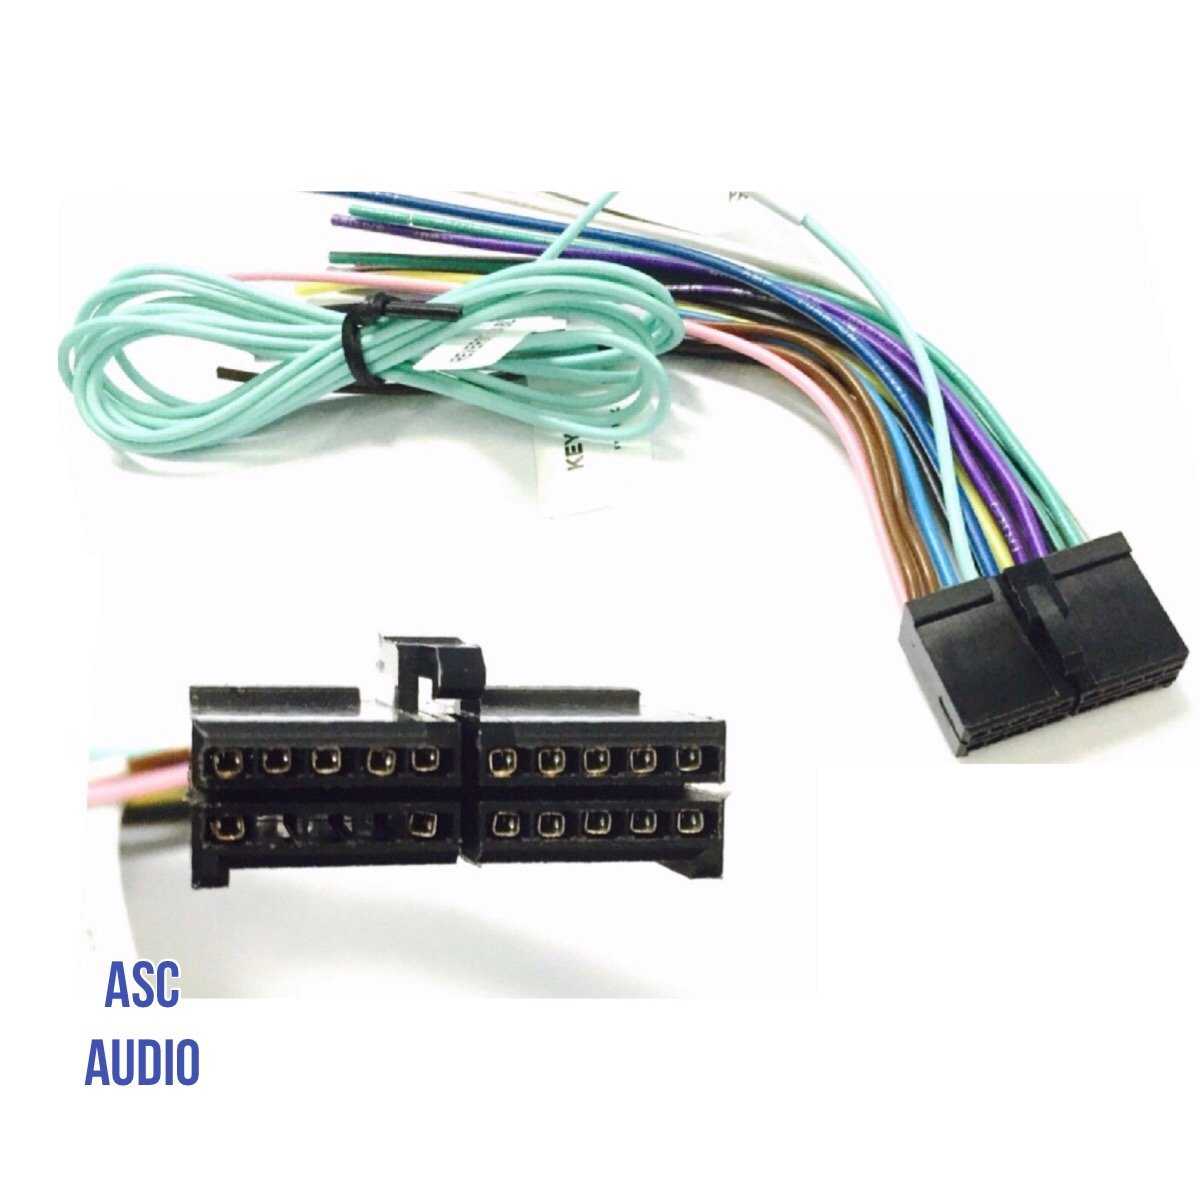 Amazon.com: ASC Audio Car Stereo Radio Wire Harness Plug for select ...